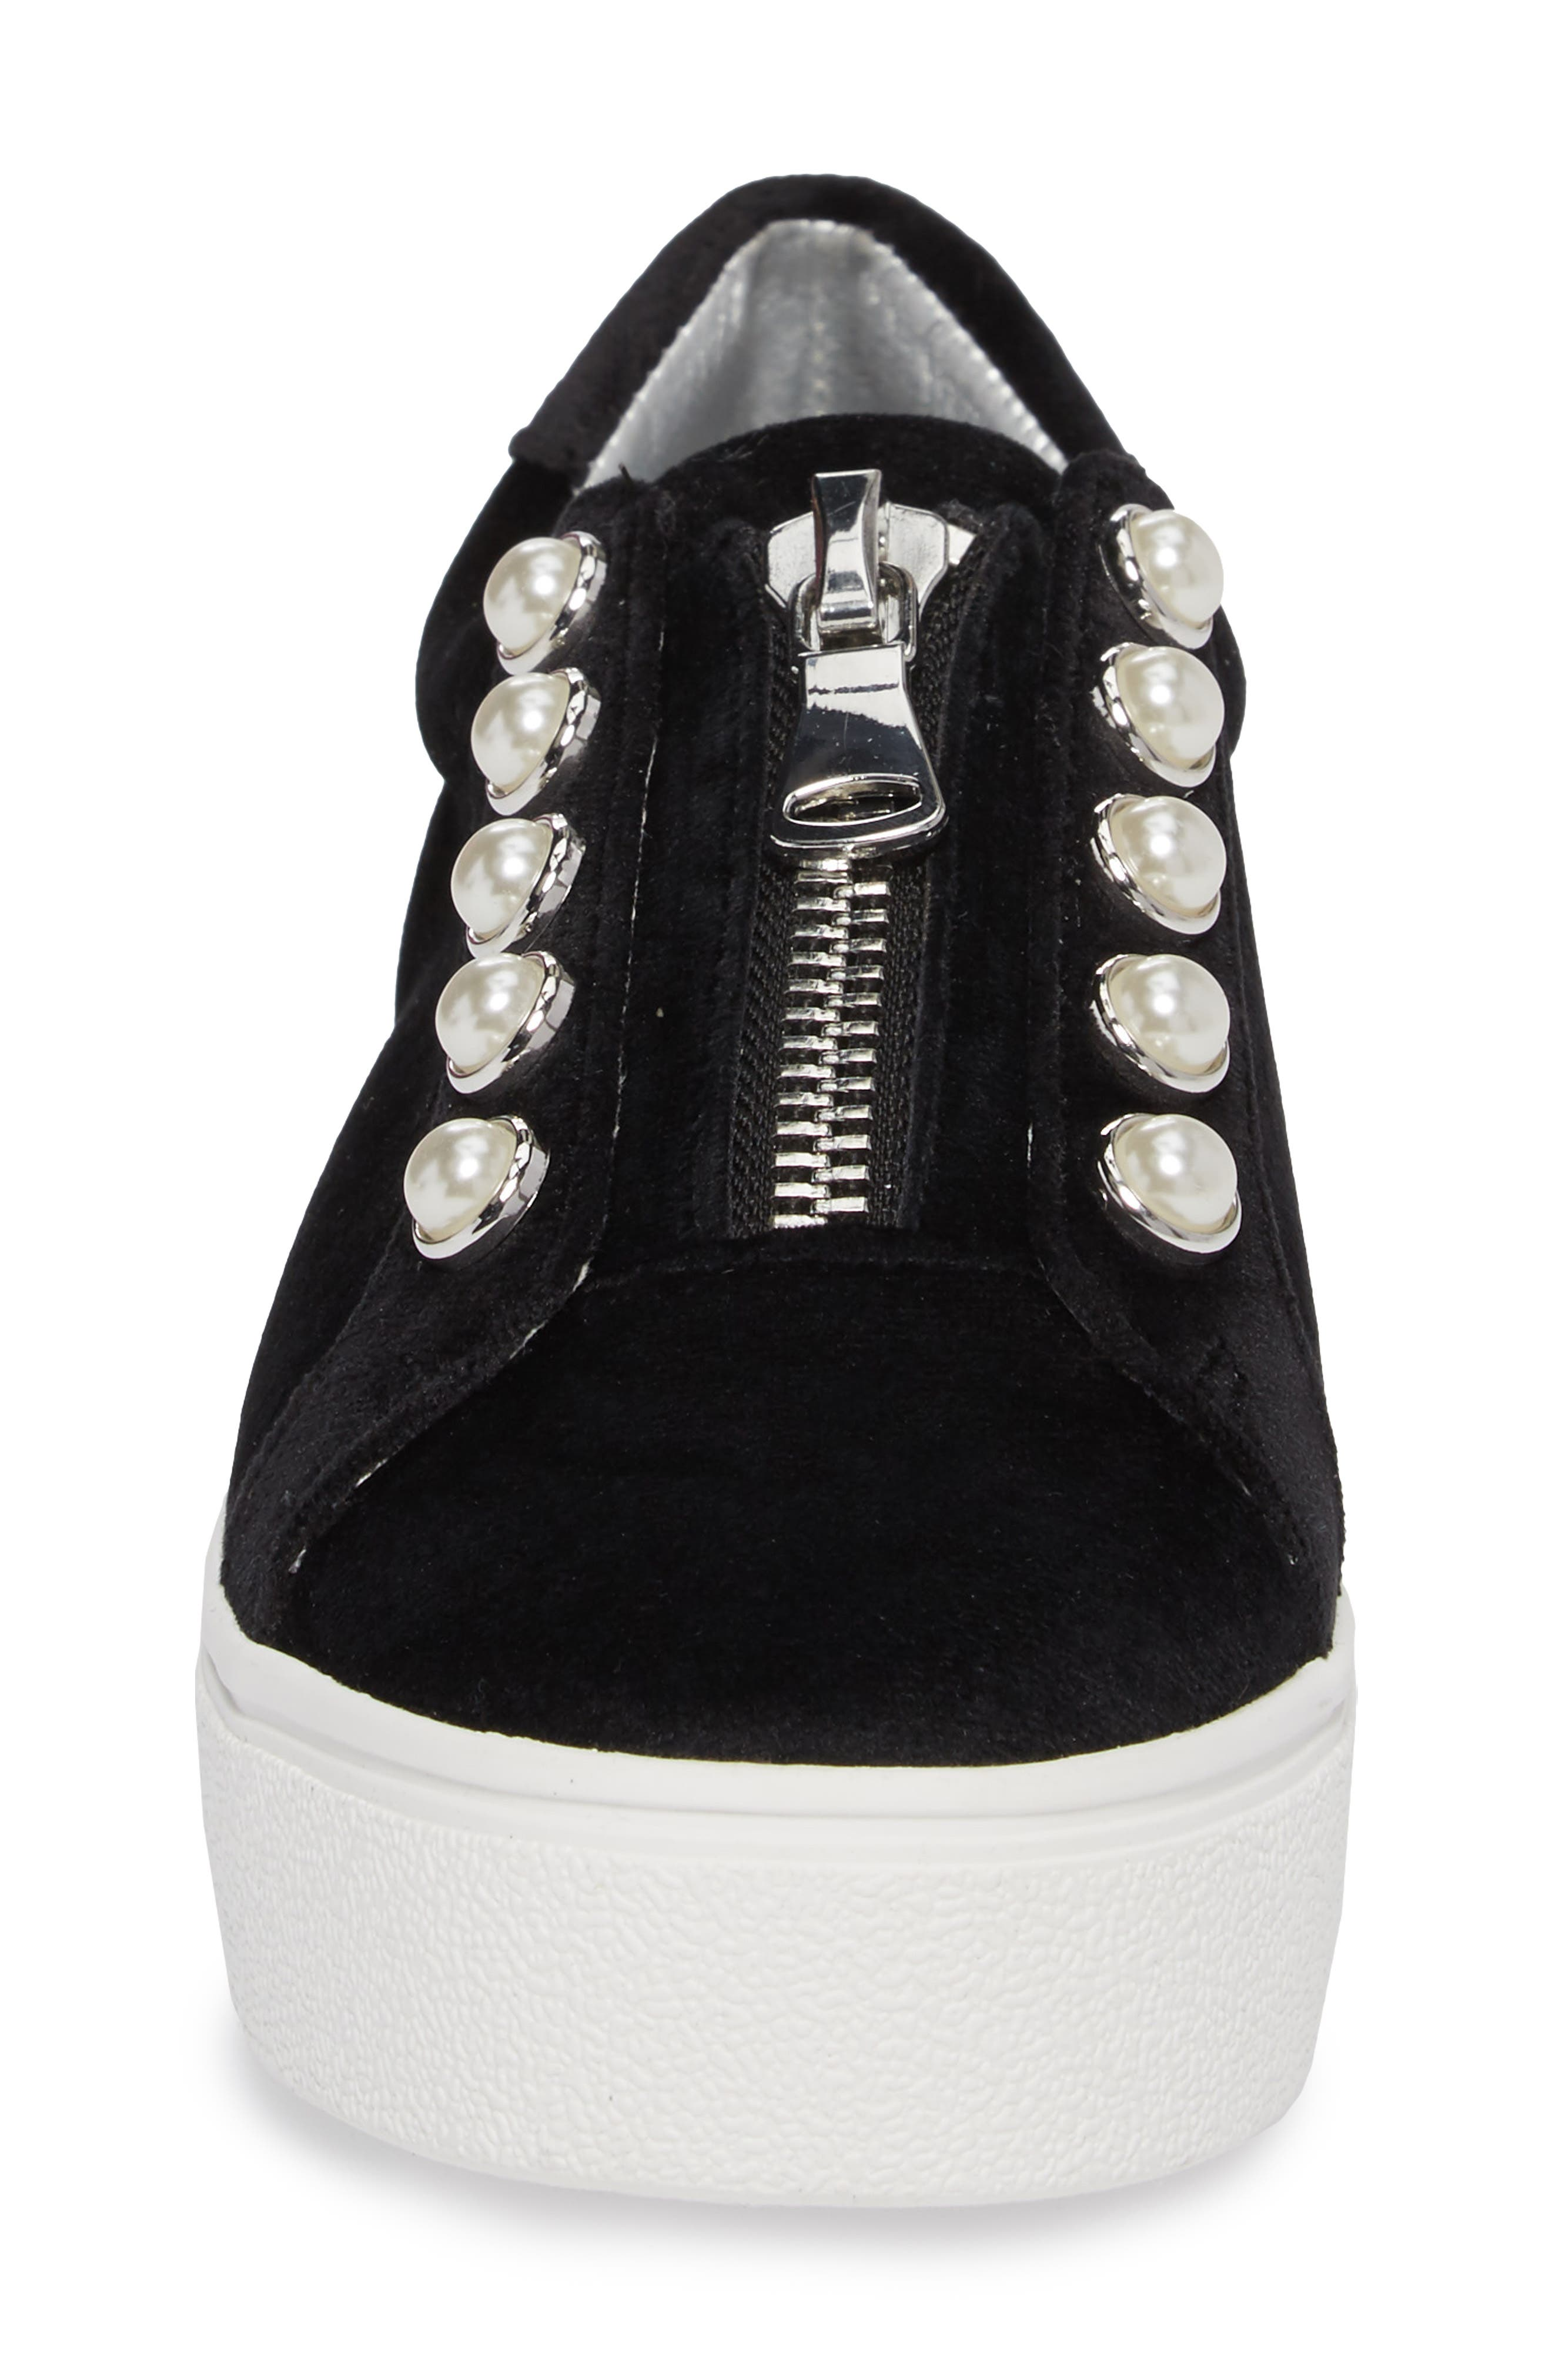 Lynn Embellished Platform Sneaker,                             Alternate thumbnail 4, color,                             001